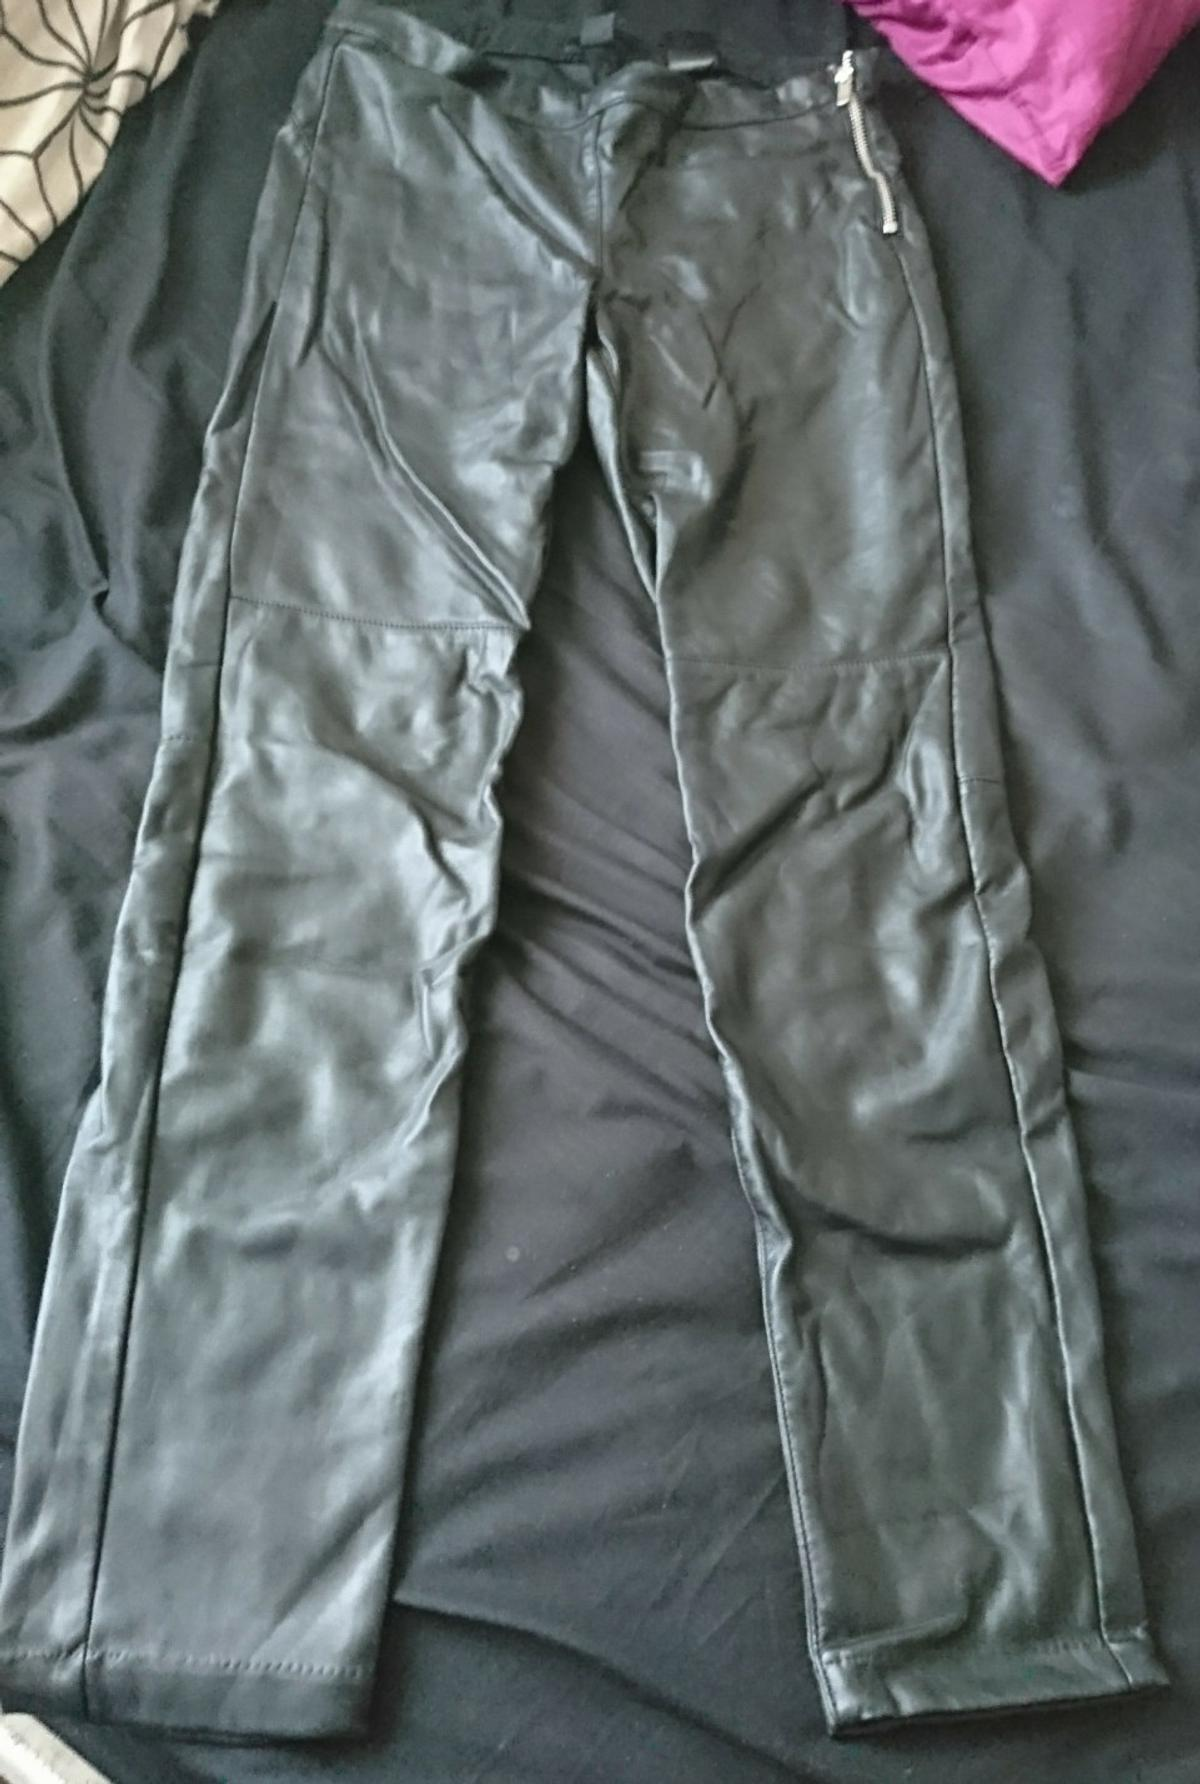 promotion online for sale great fit wet look faux leather trousers